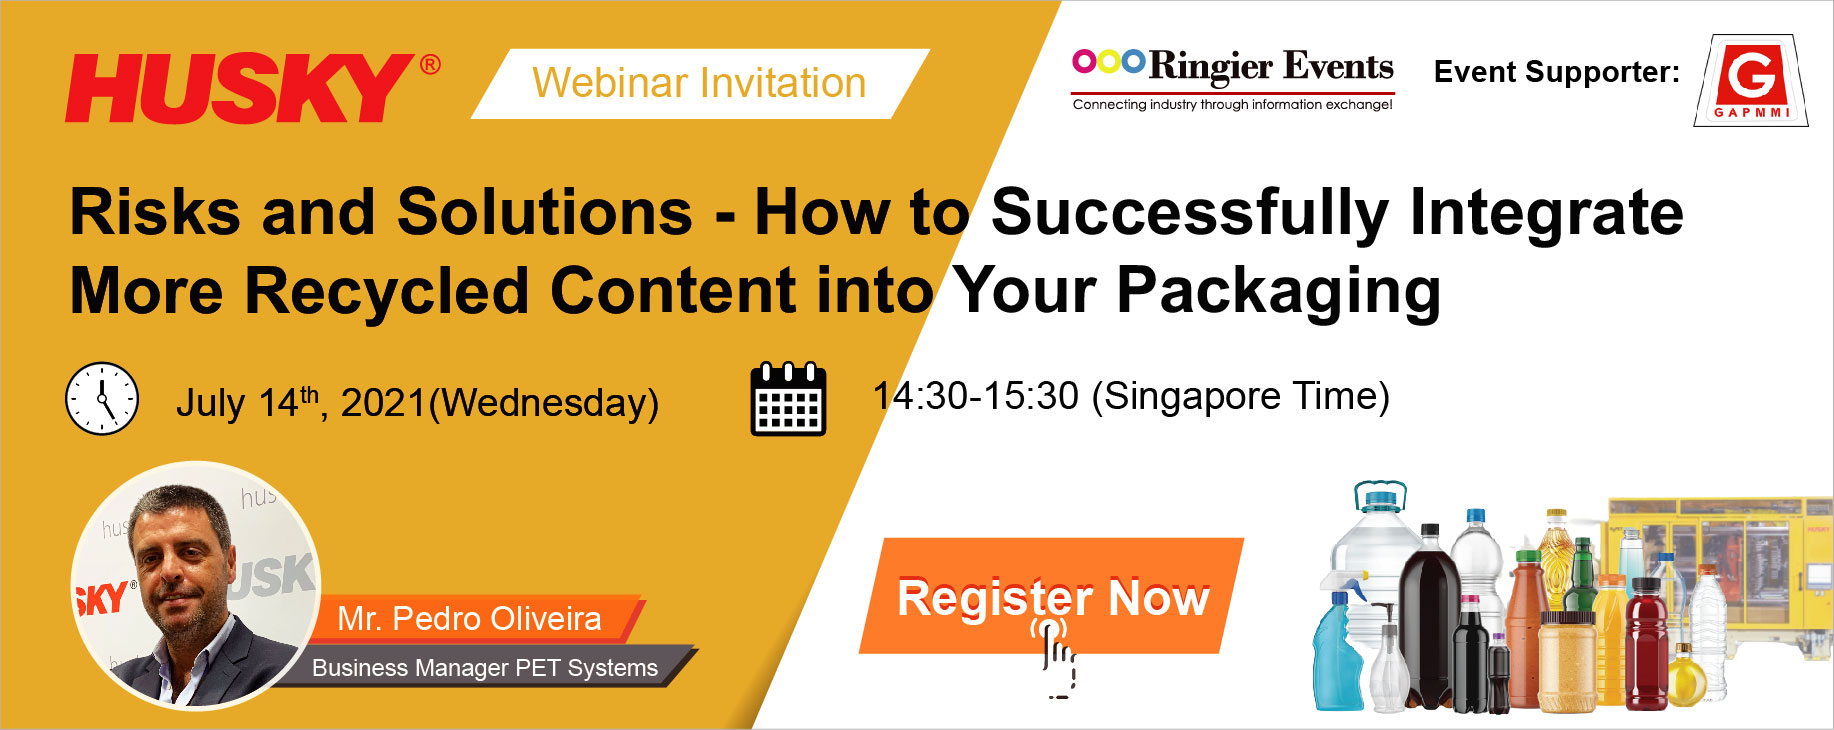 https://ringierevents.clickmeeting.com/risks-and-solutions-how-to-successfully-integrate-more-recycled-content-into-your-packaging/register?_ga=2.256518530.844357106.1623052281-1337558959.1623052281